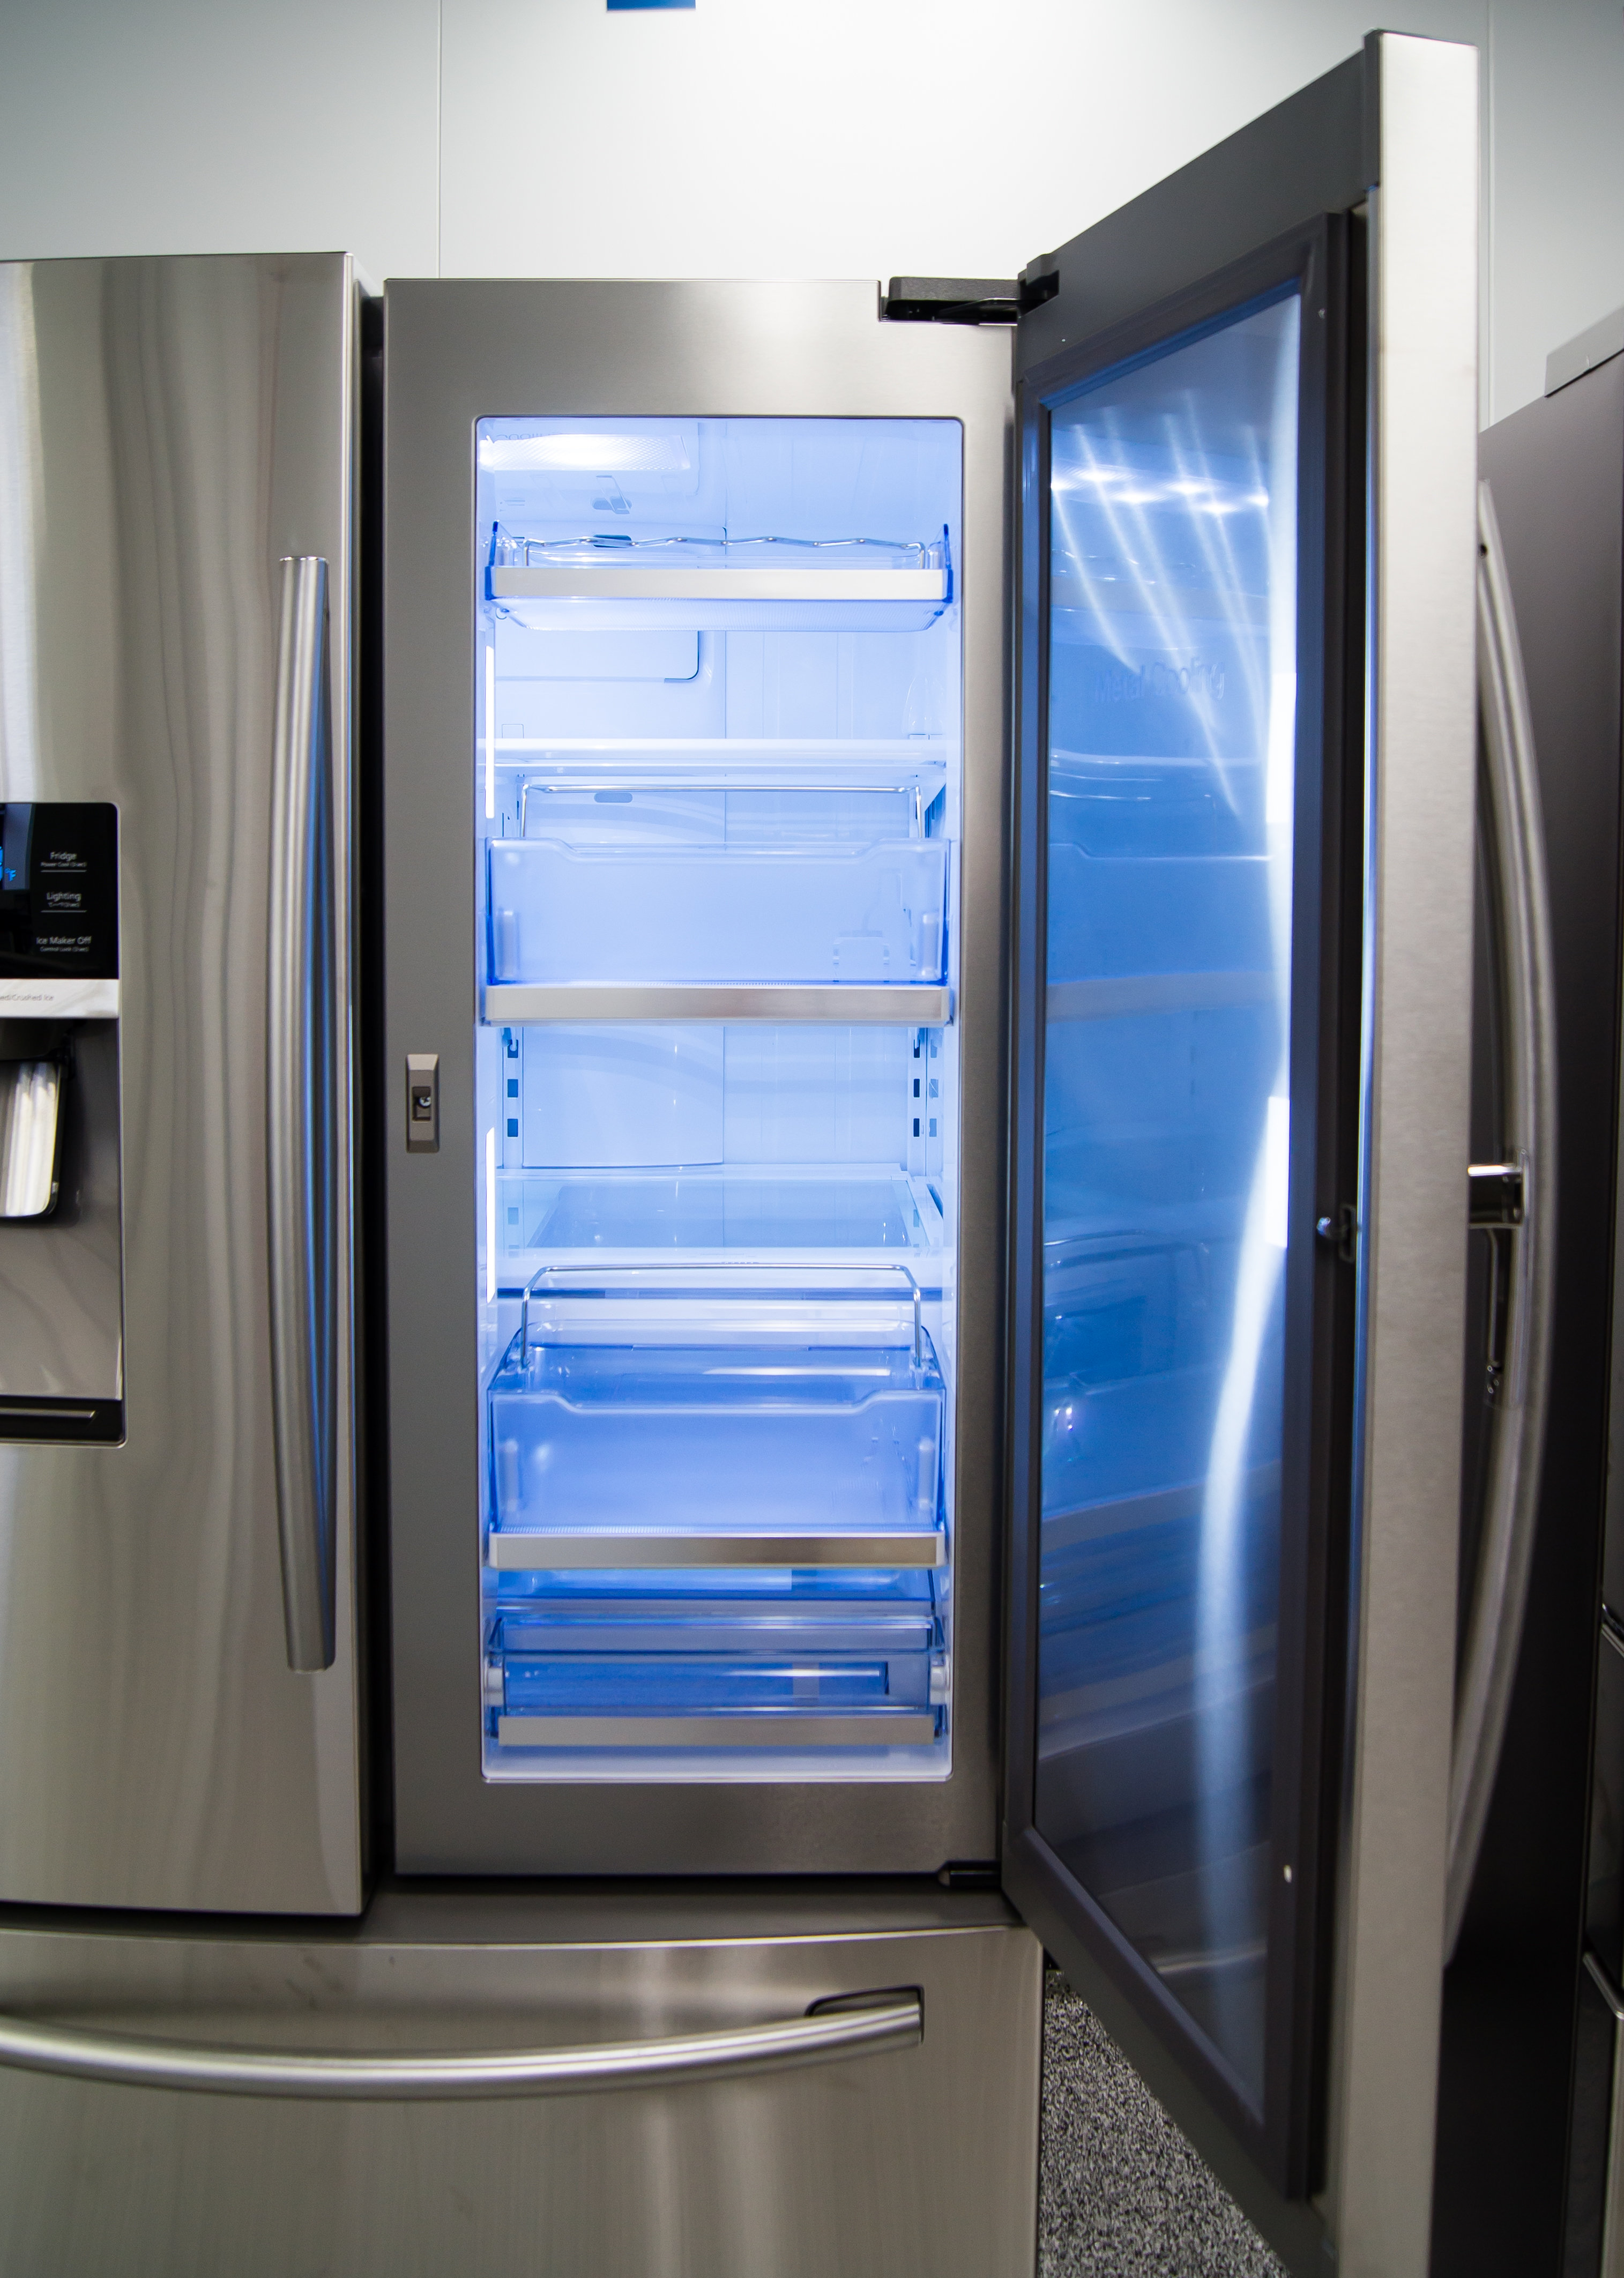 The Samsung RF28HDEDBSR's door-in-door compartment has four available shelves for storage.